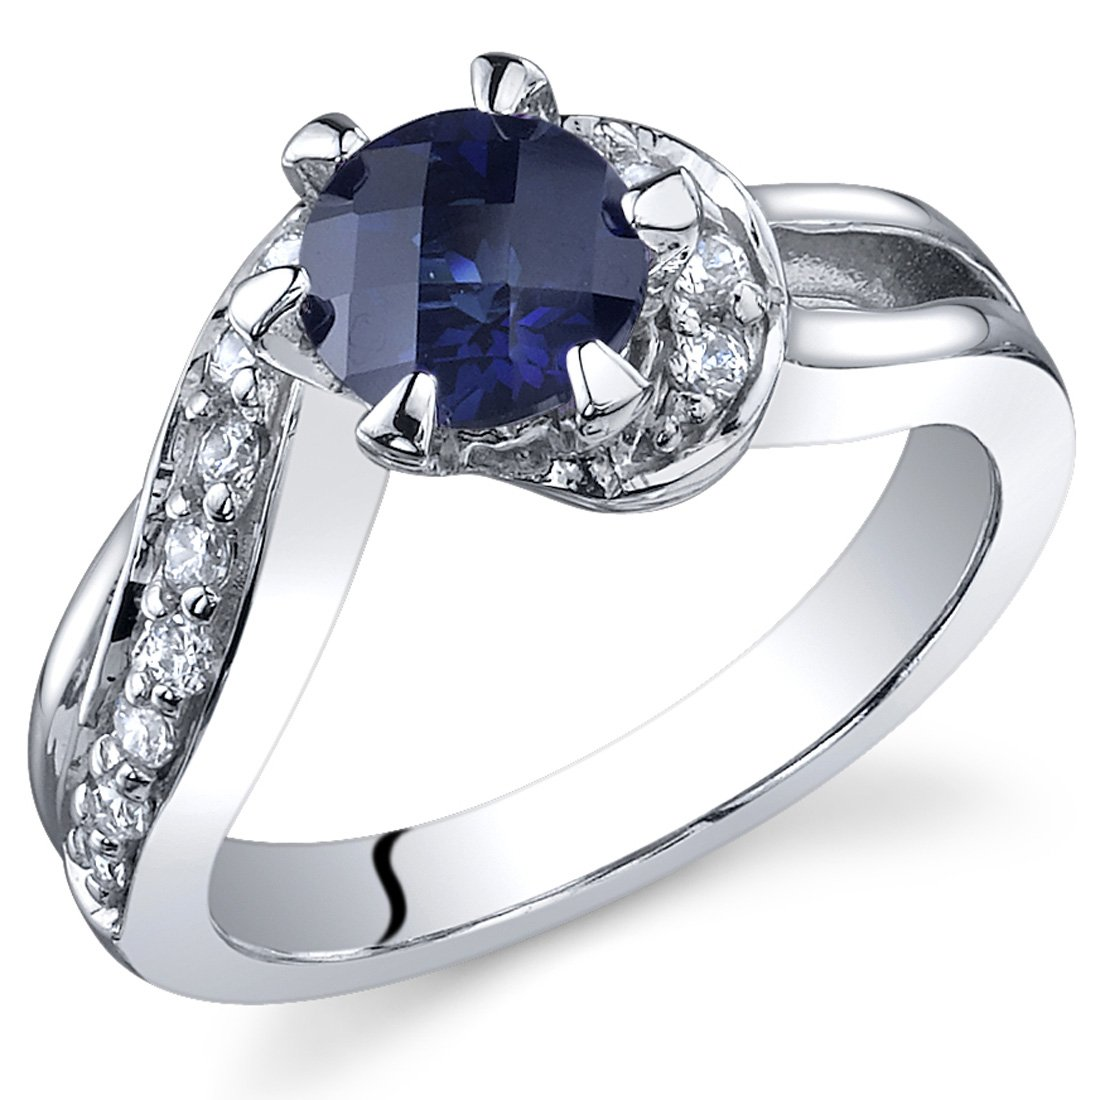 Created Sapphire Enagagement Ring 1.25 Carats Sterling Silver Sizes 5 to 9